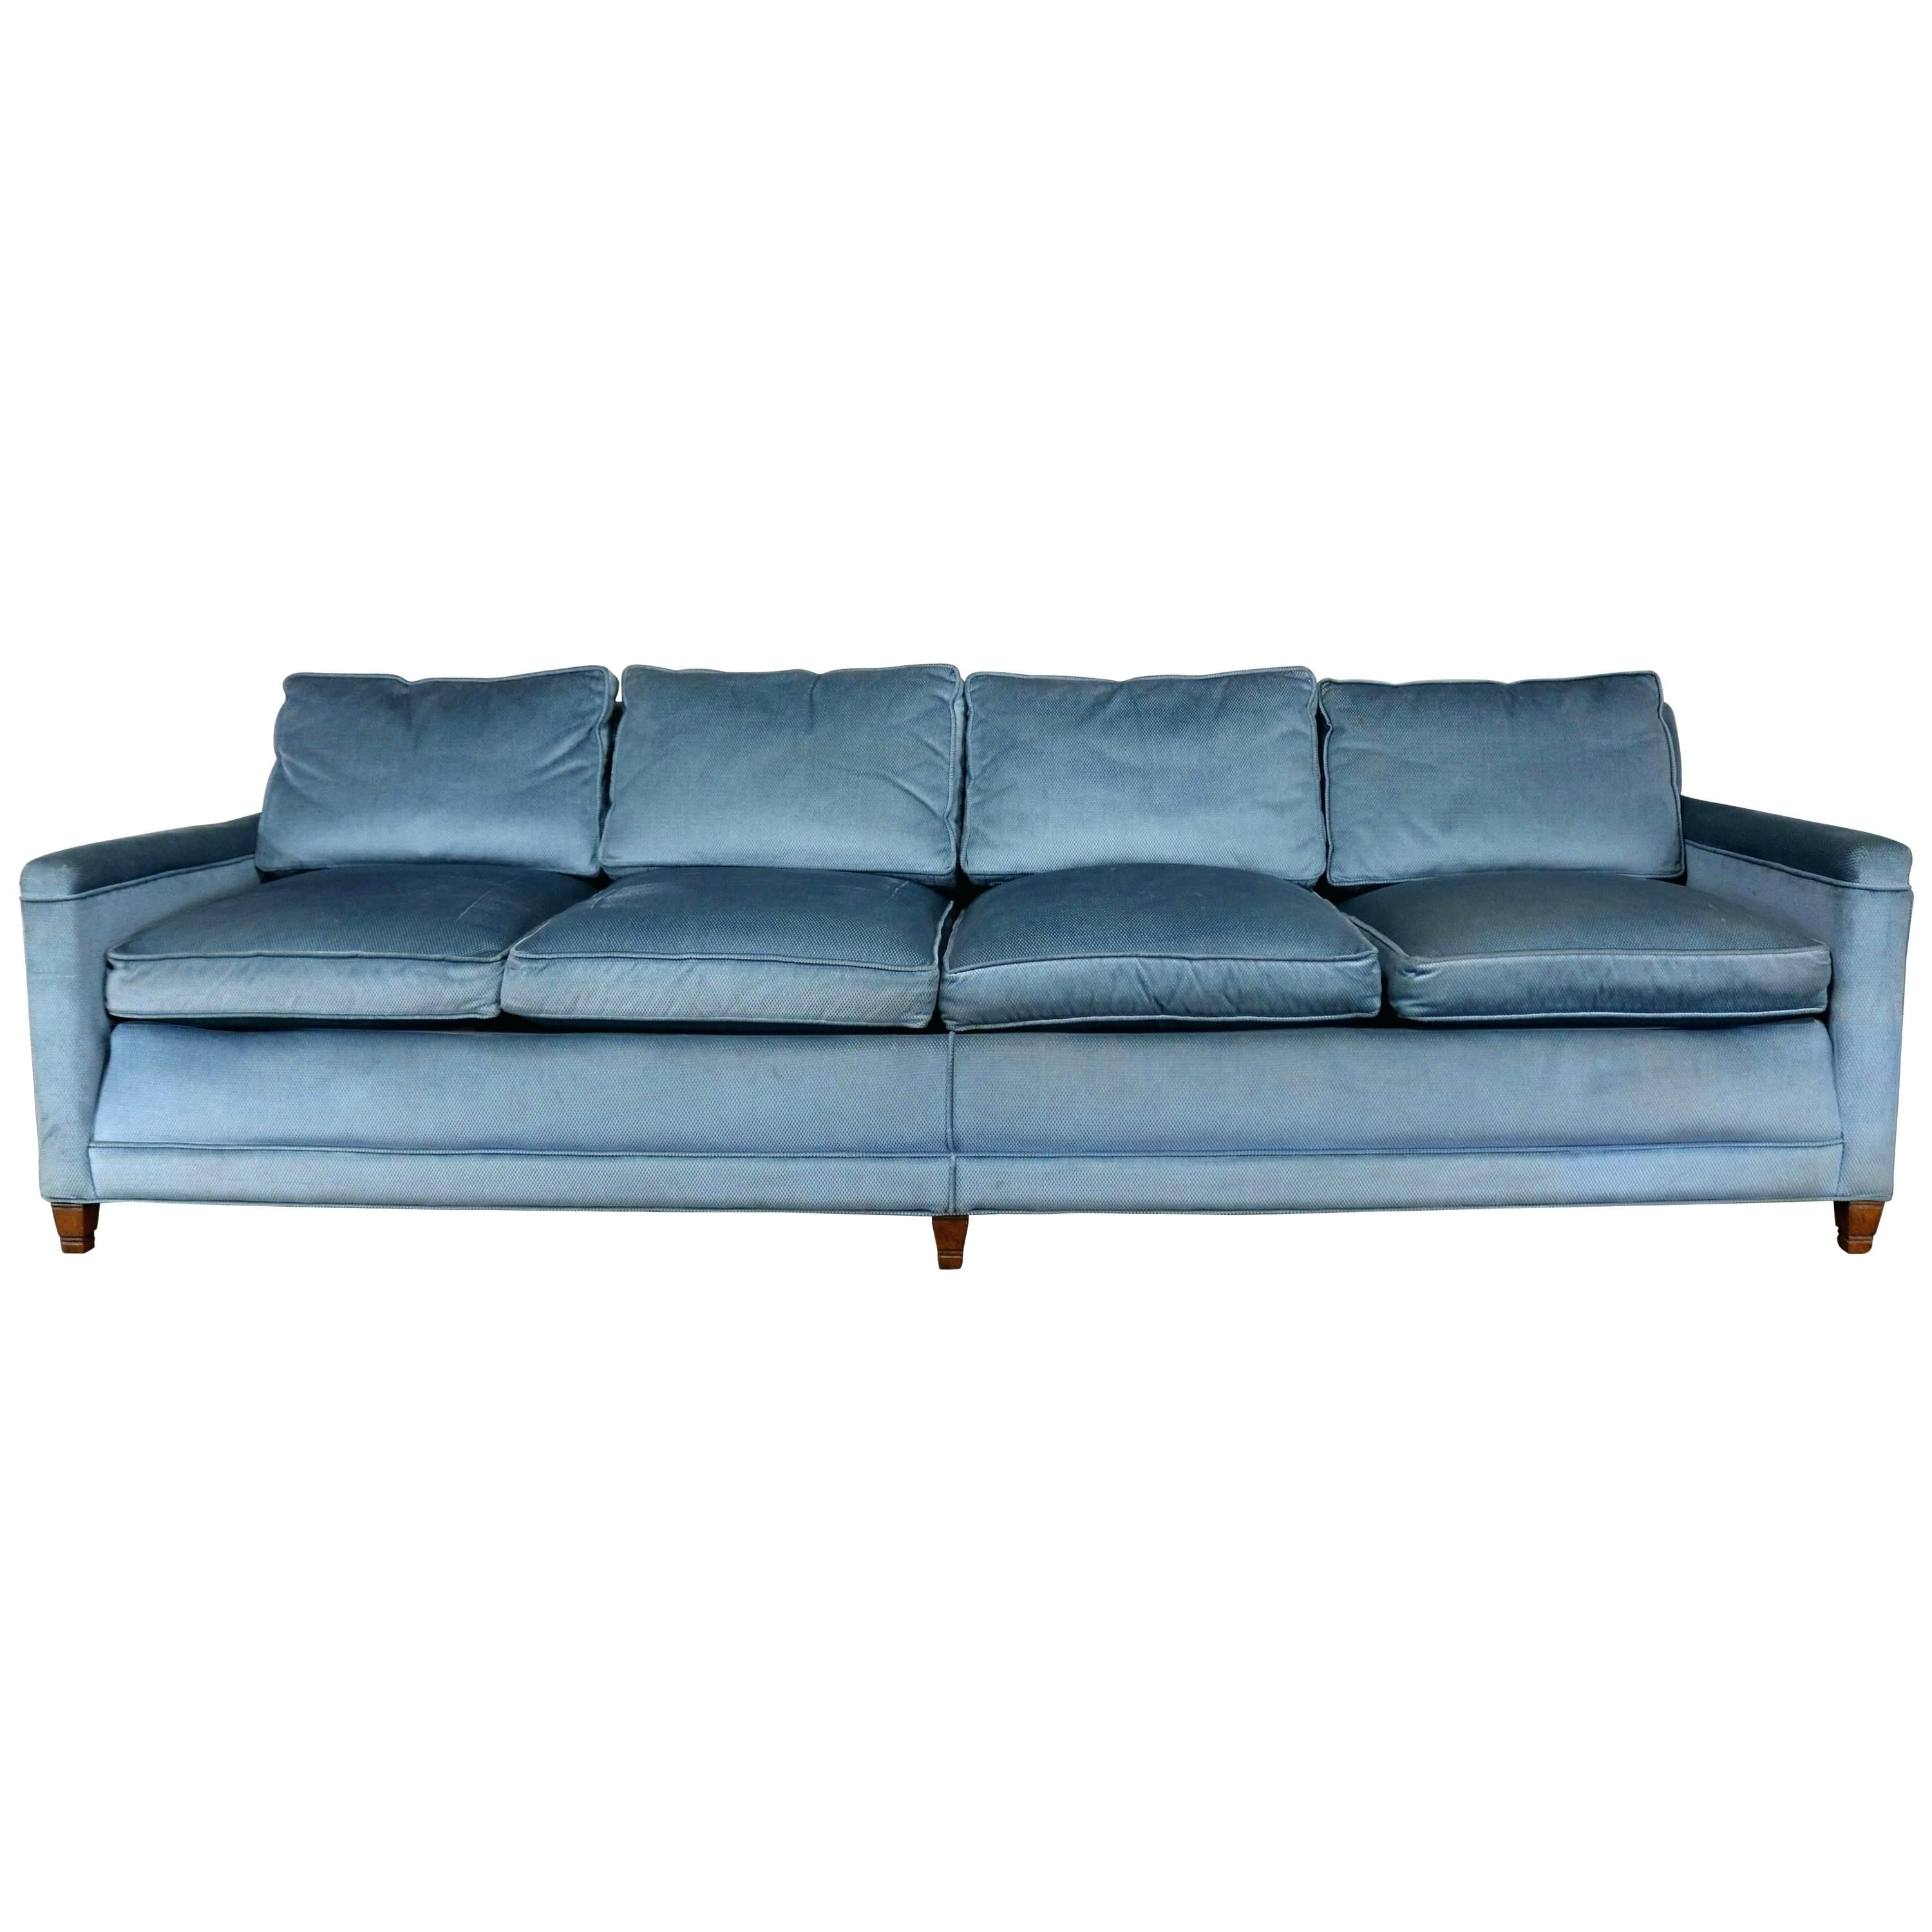 Awesome Lawson Style Sofa Slipcover Lawsonstylesofaslipcover